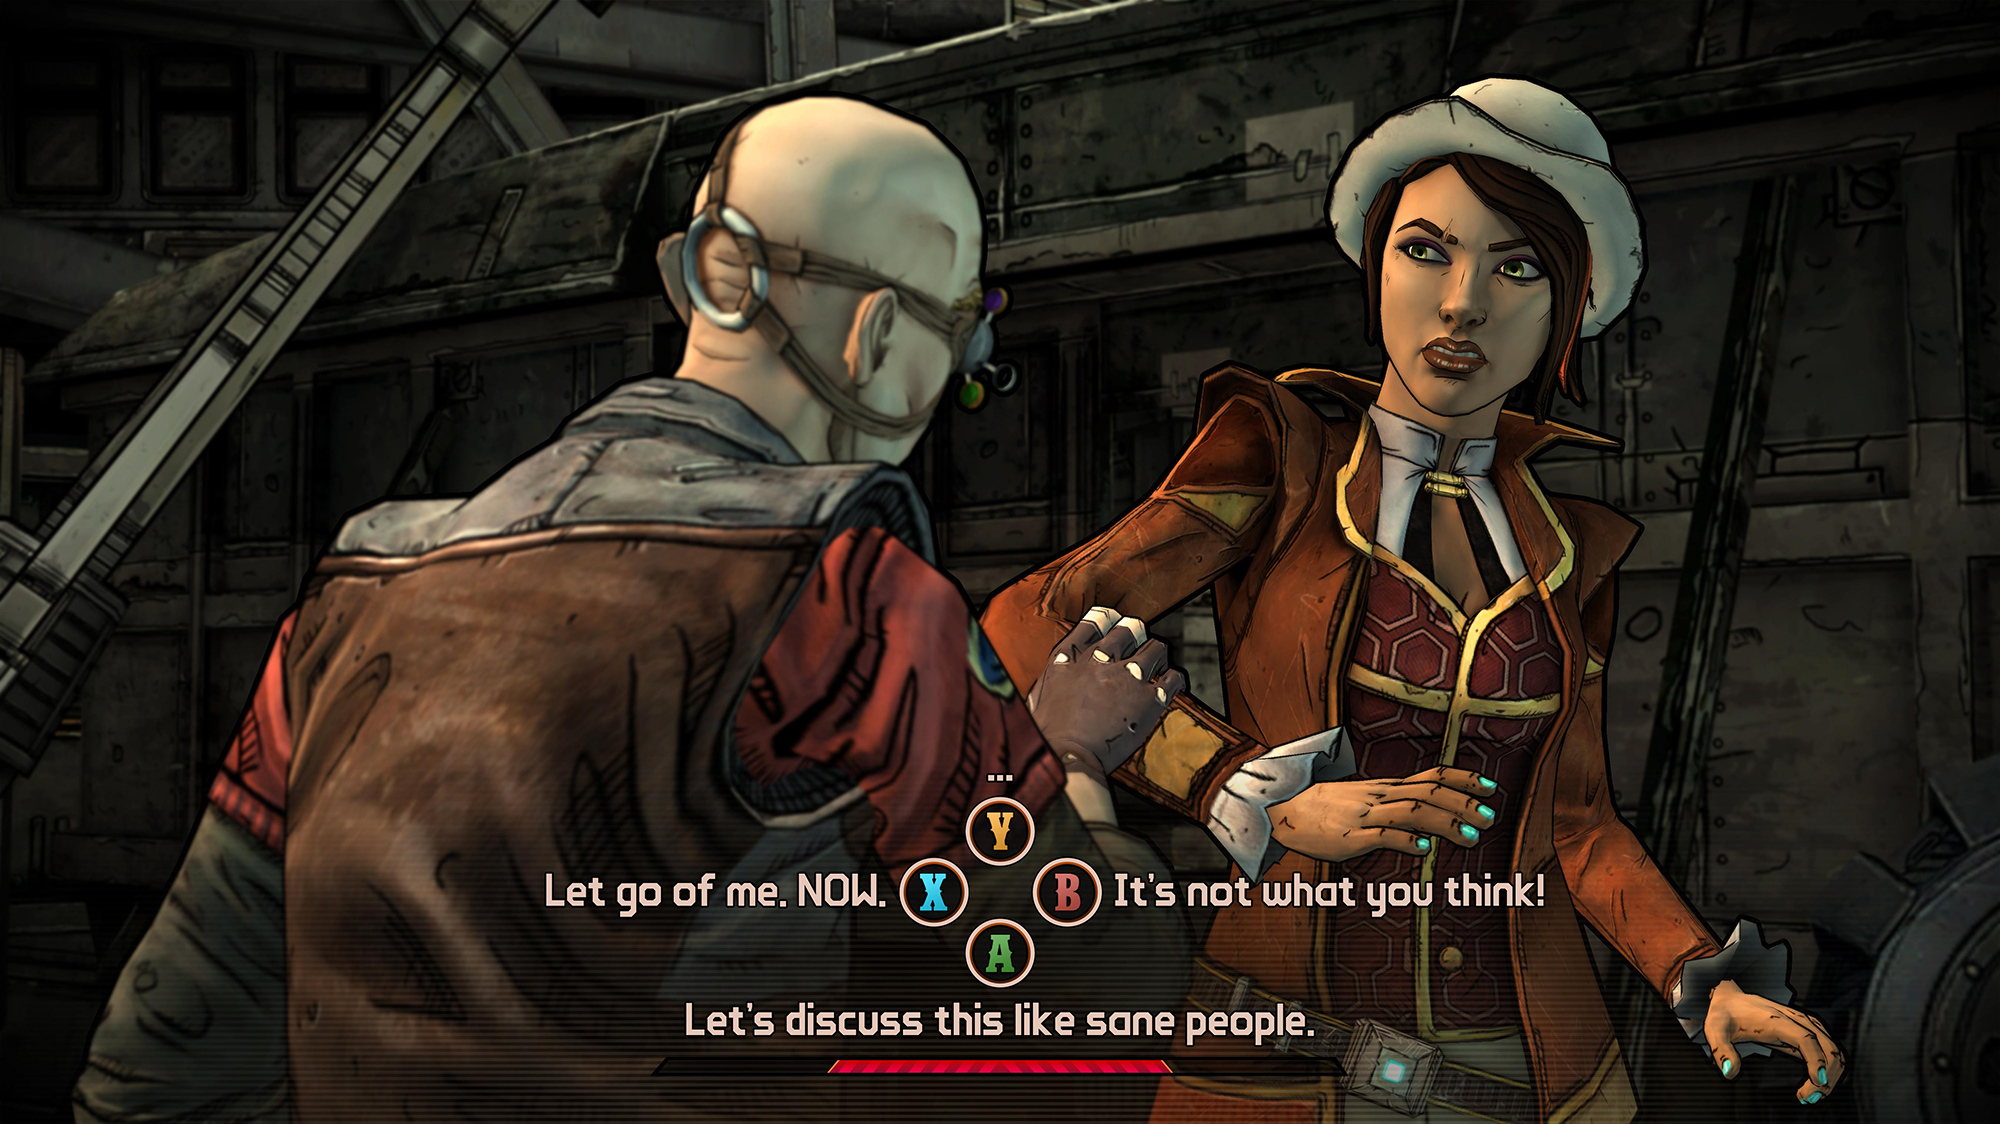 Tales-from-the-Borderlands-Gameplay-Screenshots-RealGamerNewz-2